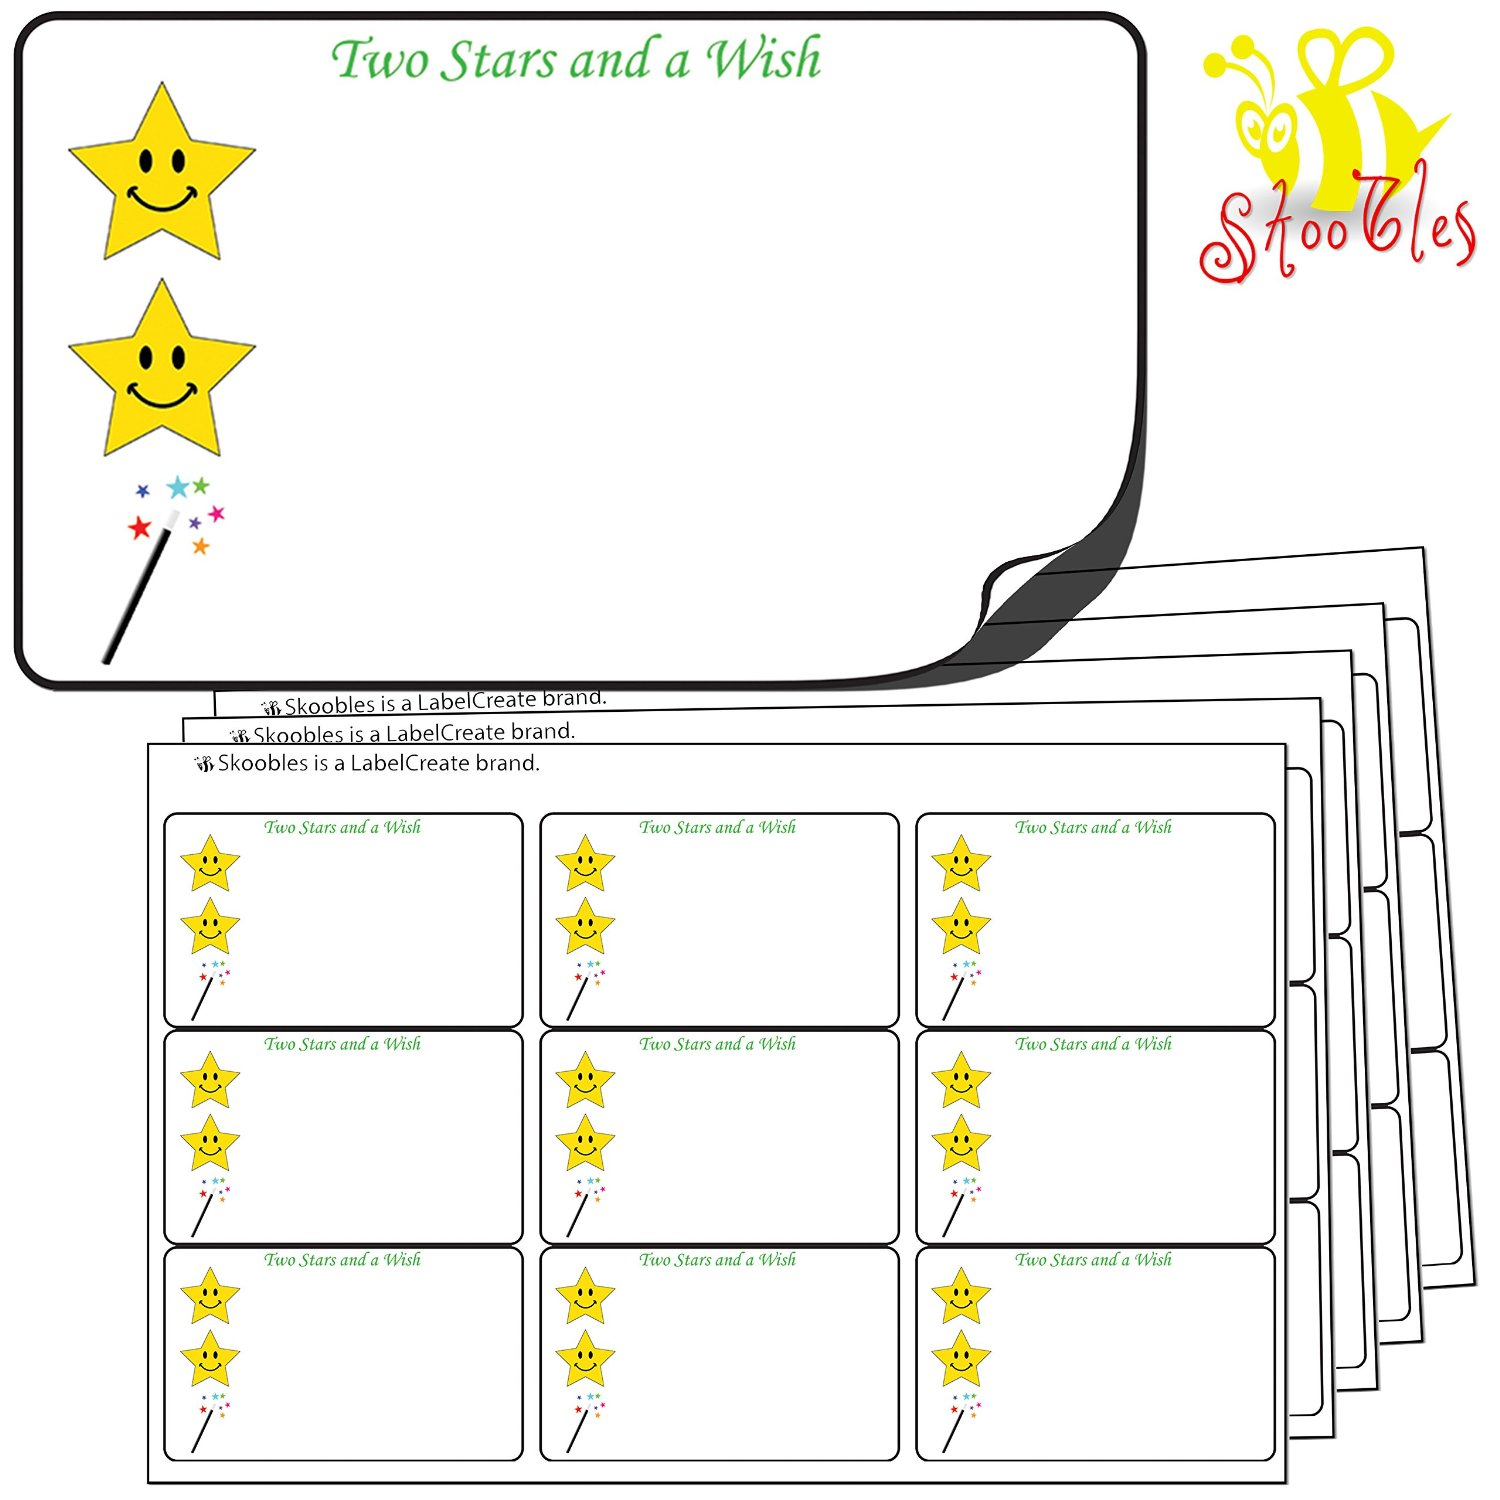 144x Two Stars and a Wish Stickers, White (64mm x 38mm)